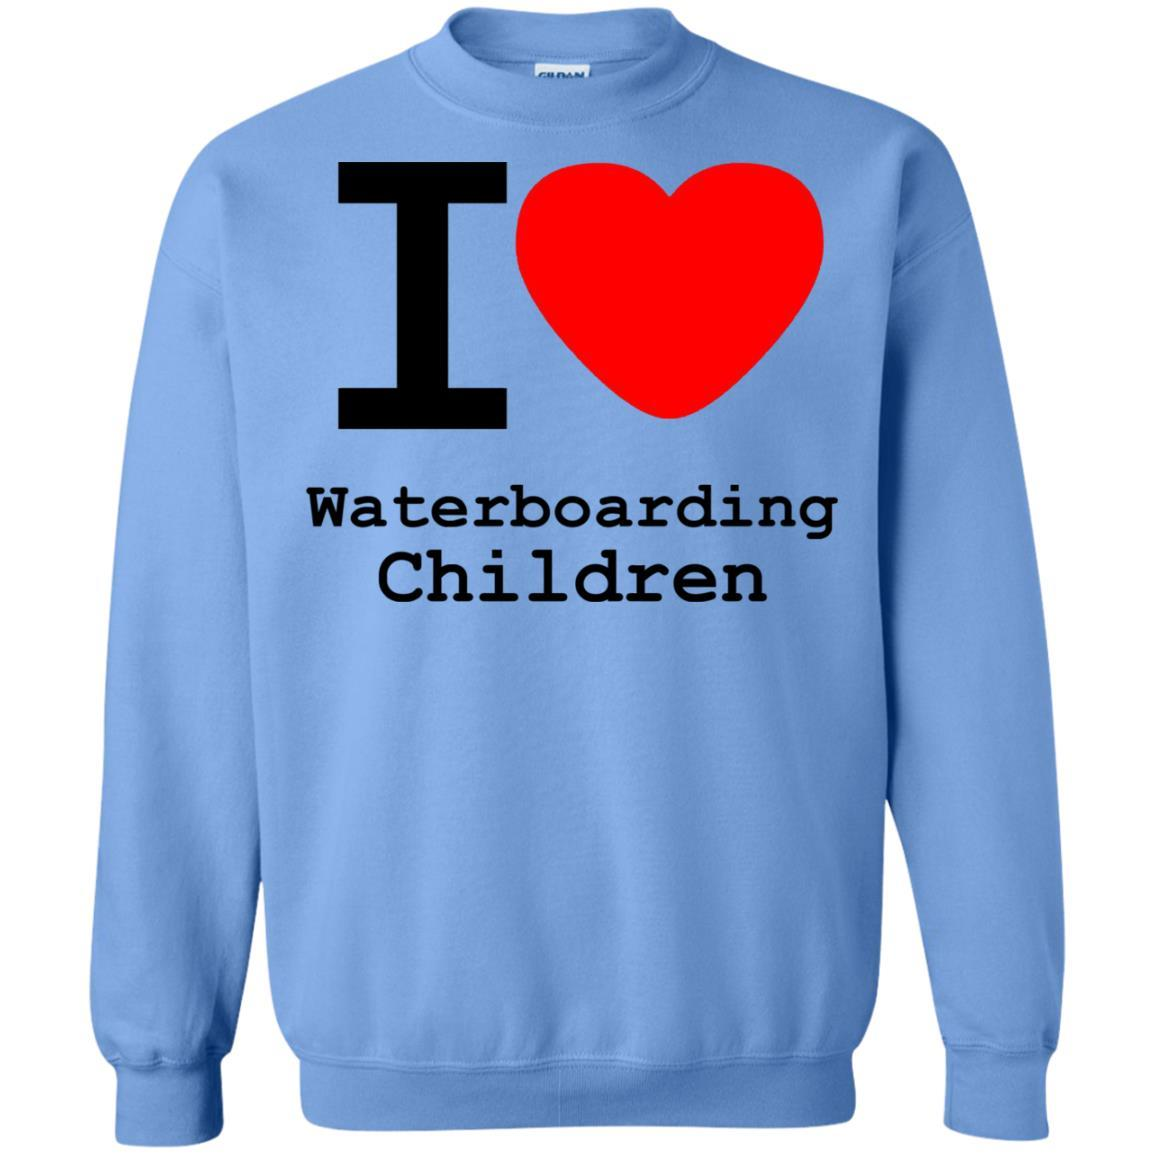 I love Waterboarding Children - Crewneck Pullover Sweatshirt Carolina Blue / 5XL